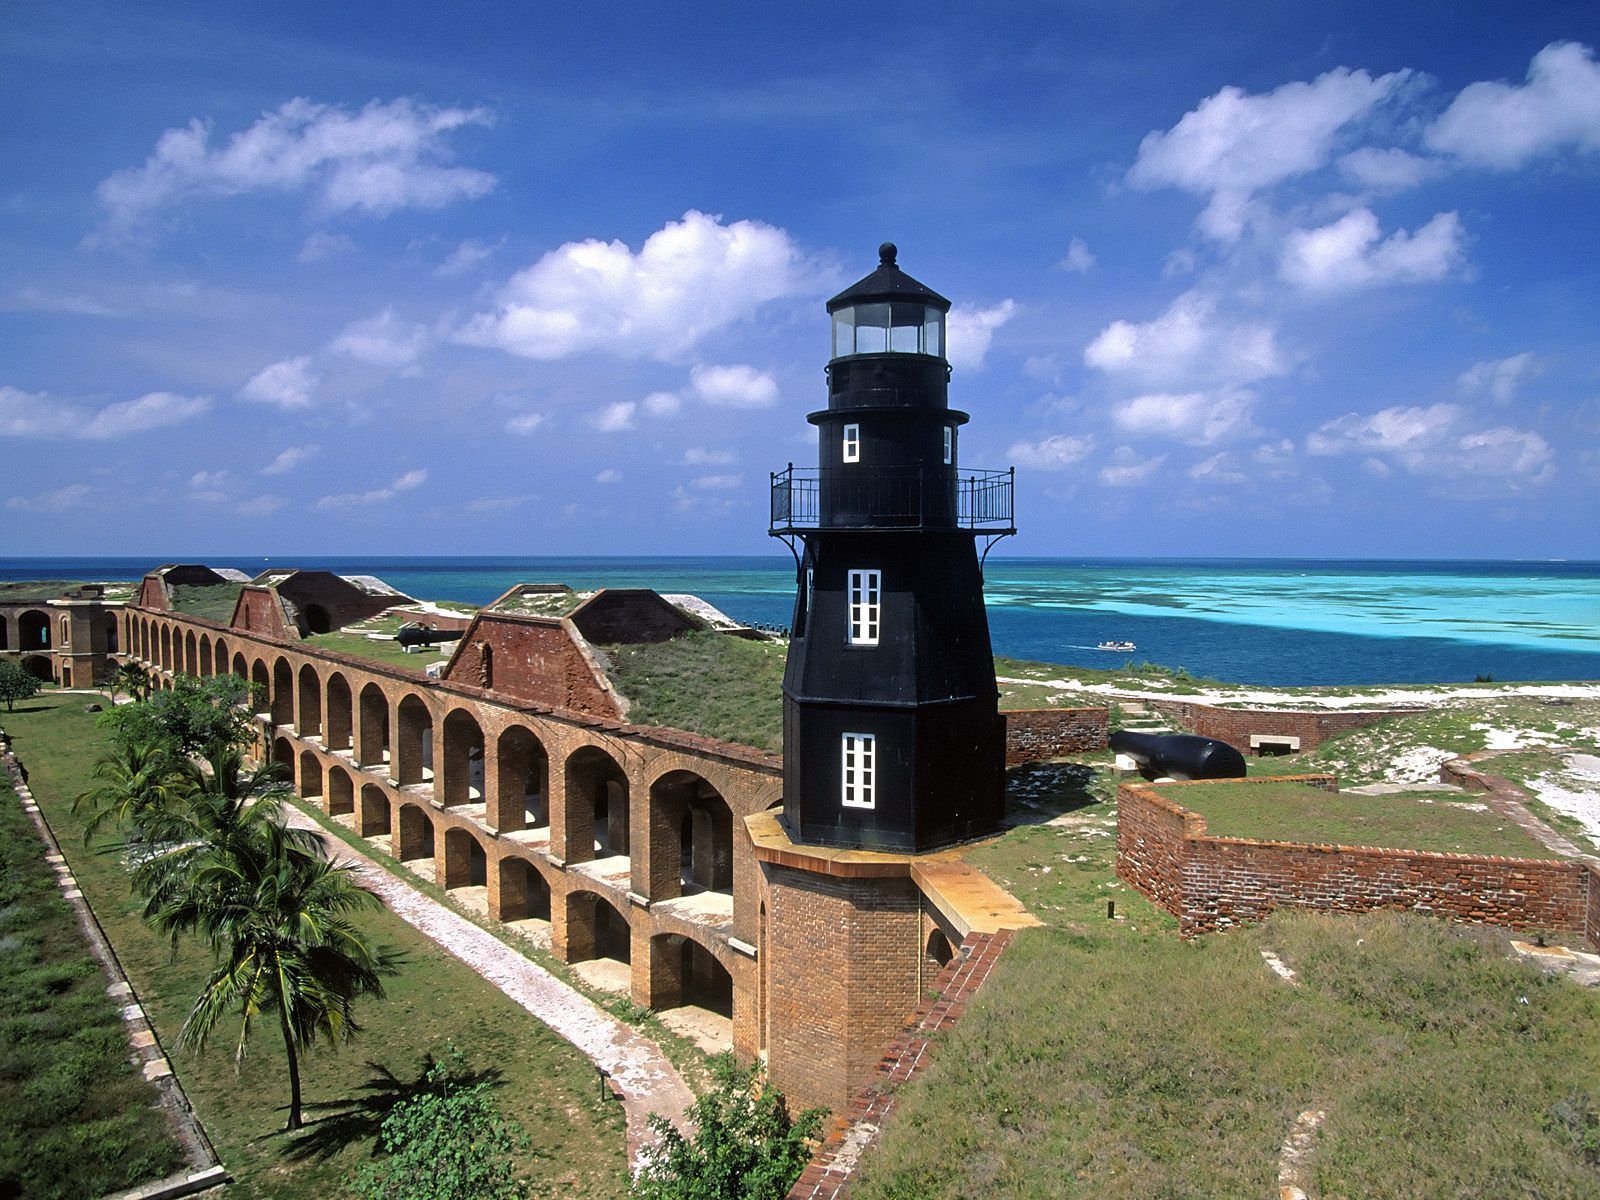 The Dry Tortugas Are A Small Group Of Islands Located At The End Of The Florida Florida Lighthouses Beautiful Lighthouse Dry Tortugas National Park